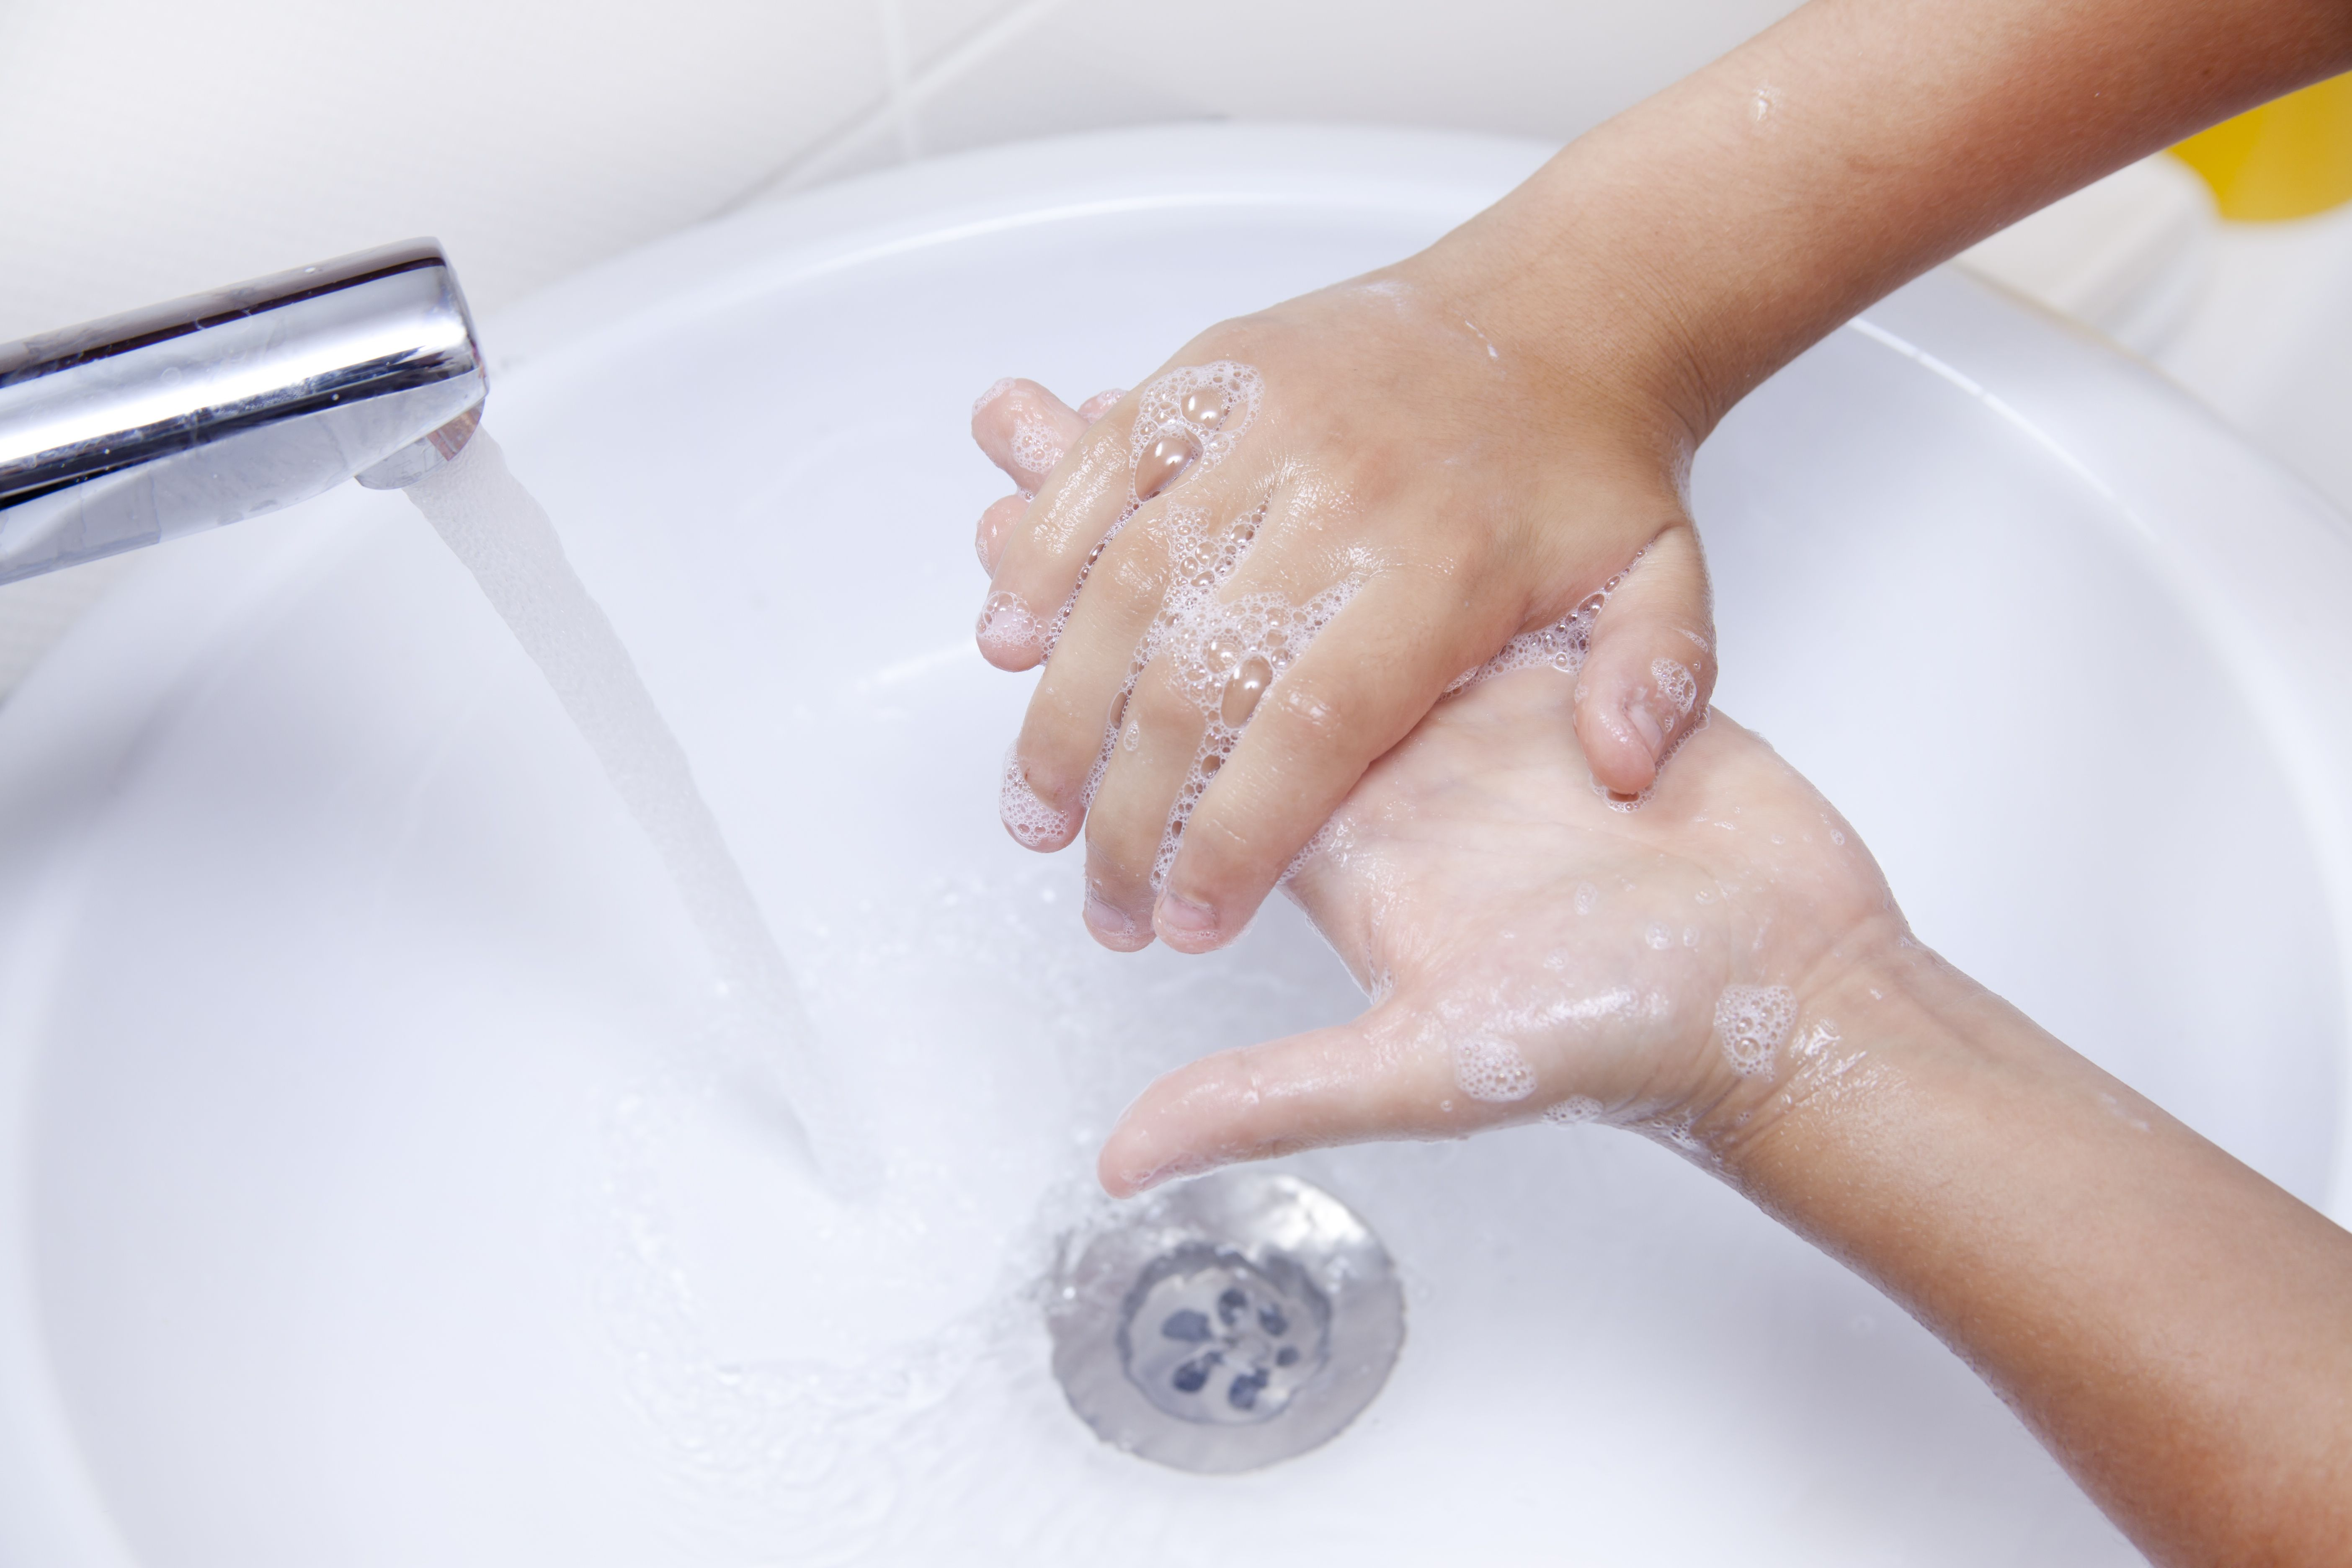 Hand washing or hand sanitizer nursing research